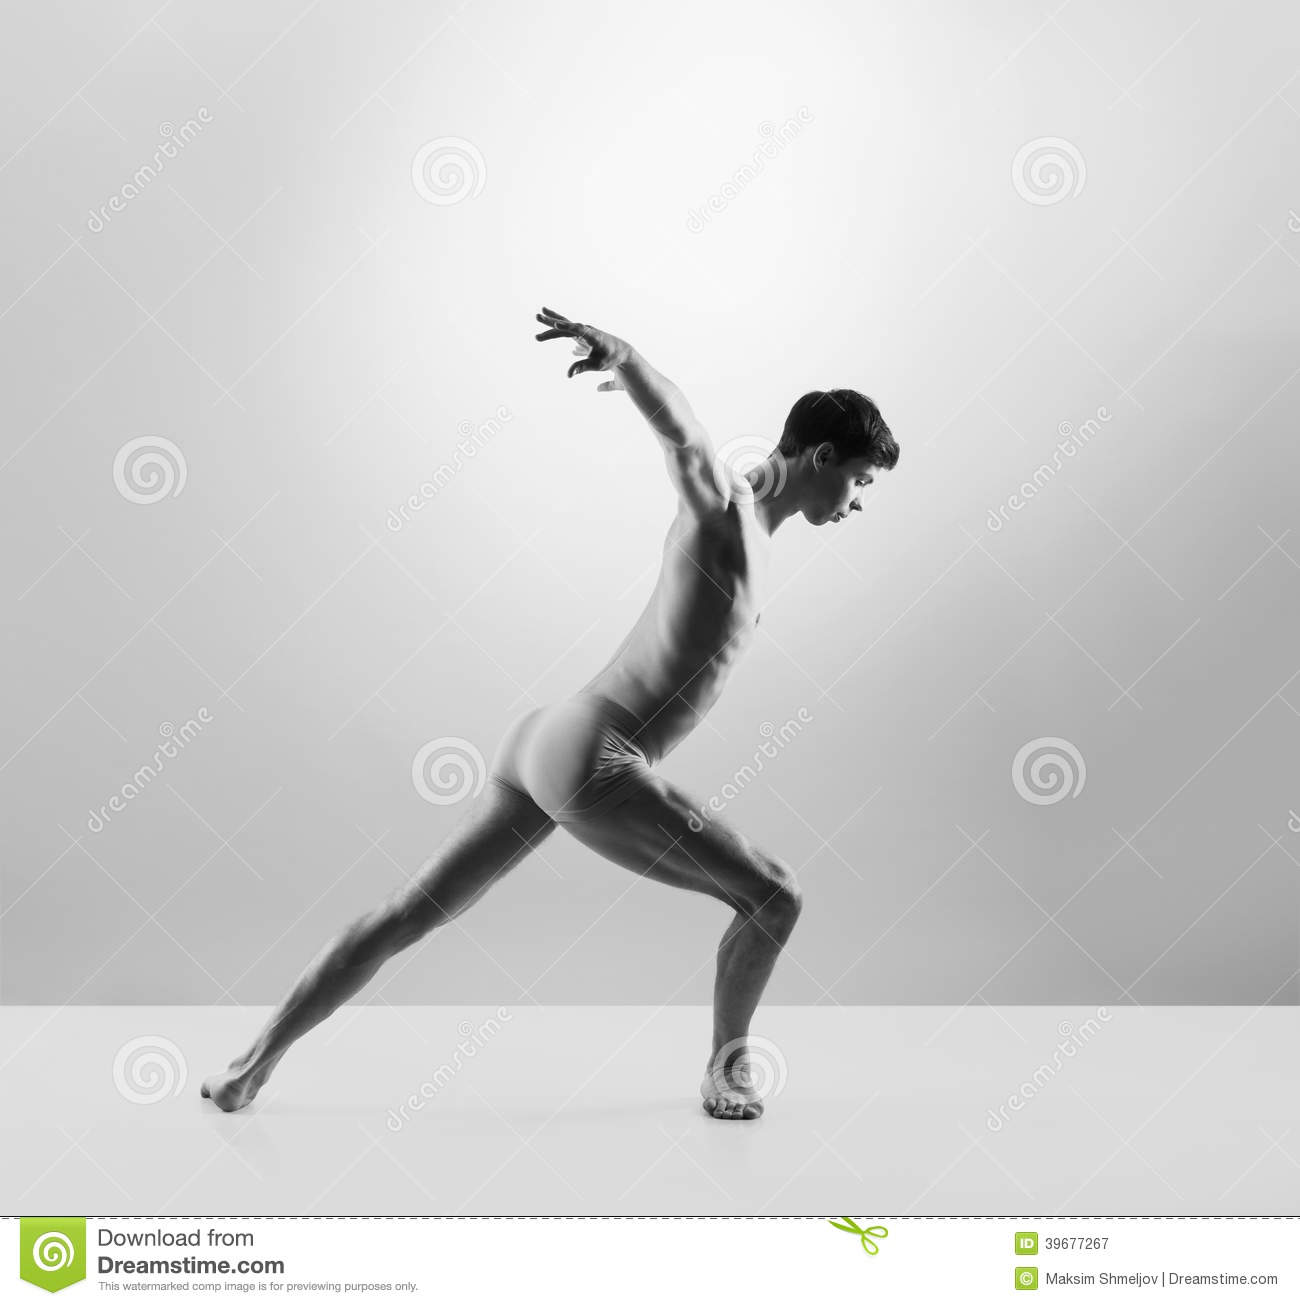 Young And Fit Male Ballet Dancer In A Studio Stock Photo - Image 39677267-8506